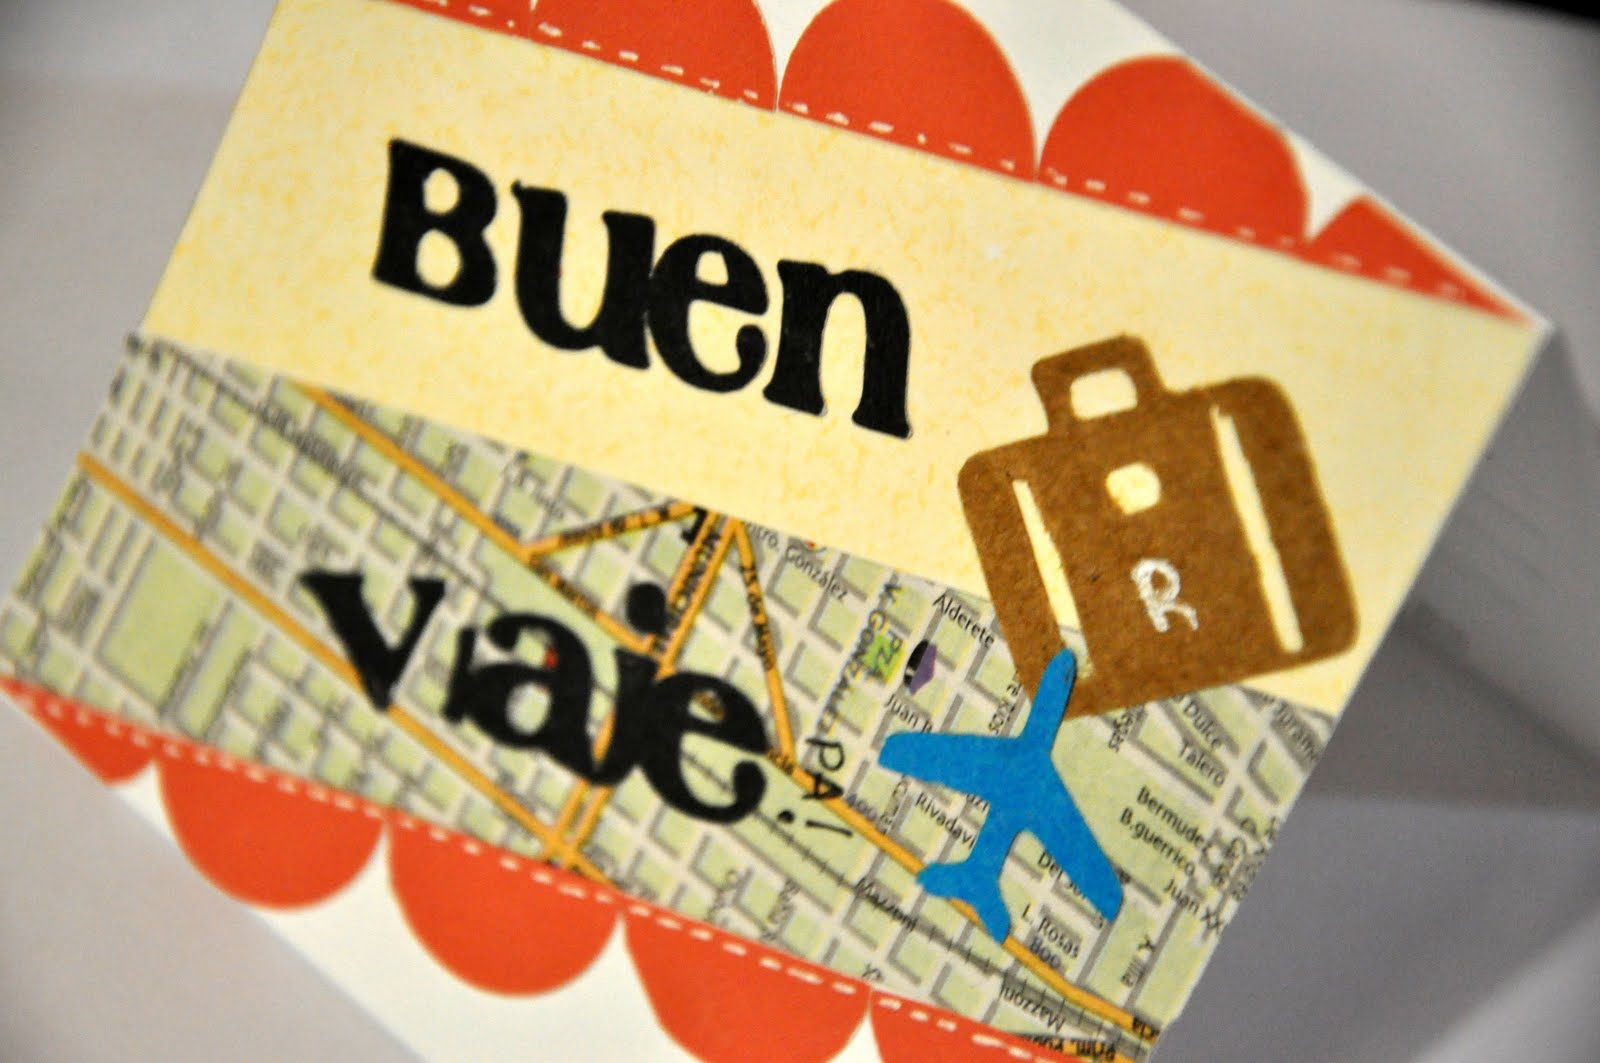 Buen Viaje - Happy card making day!